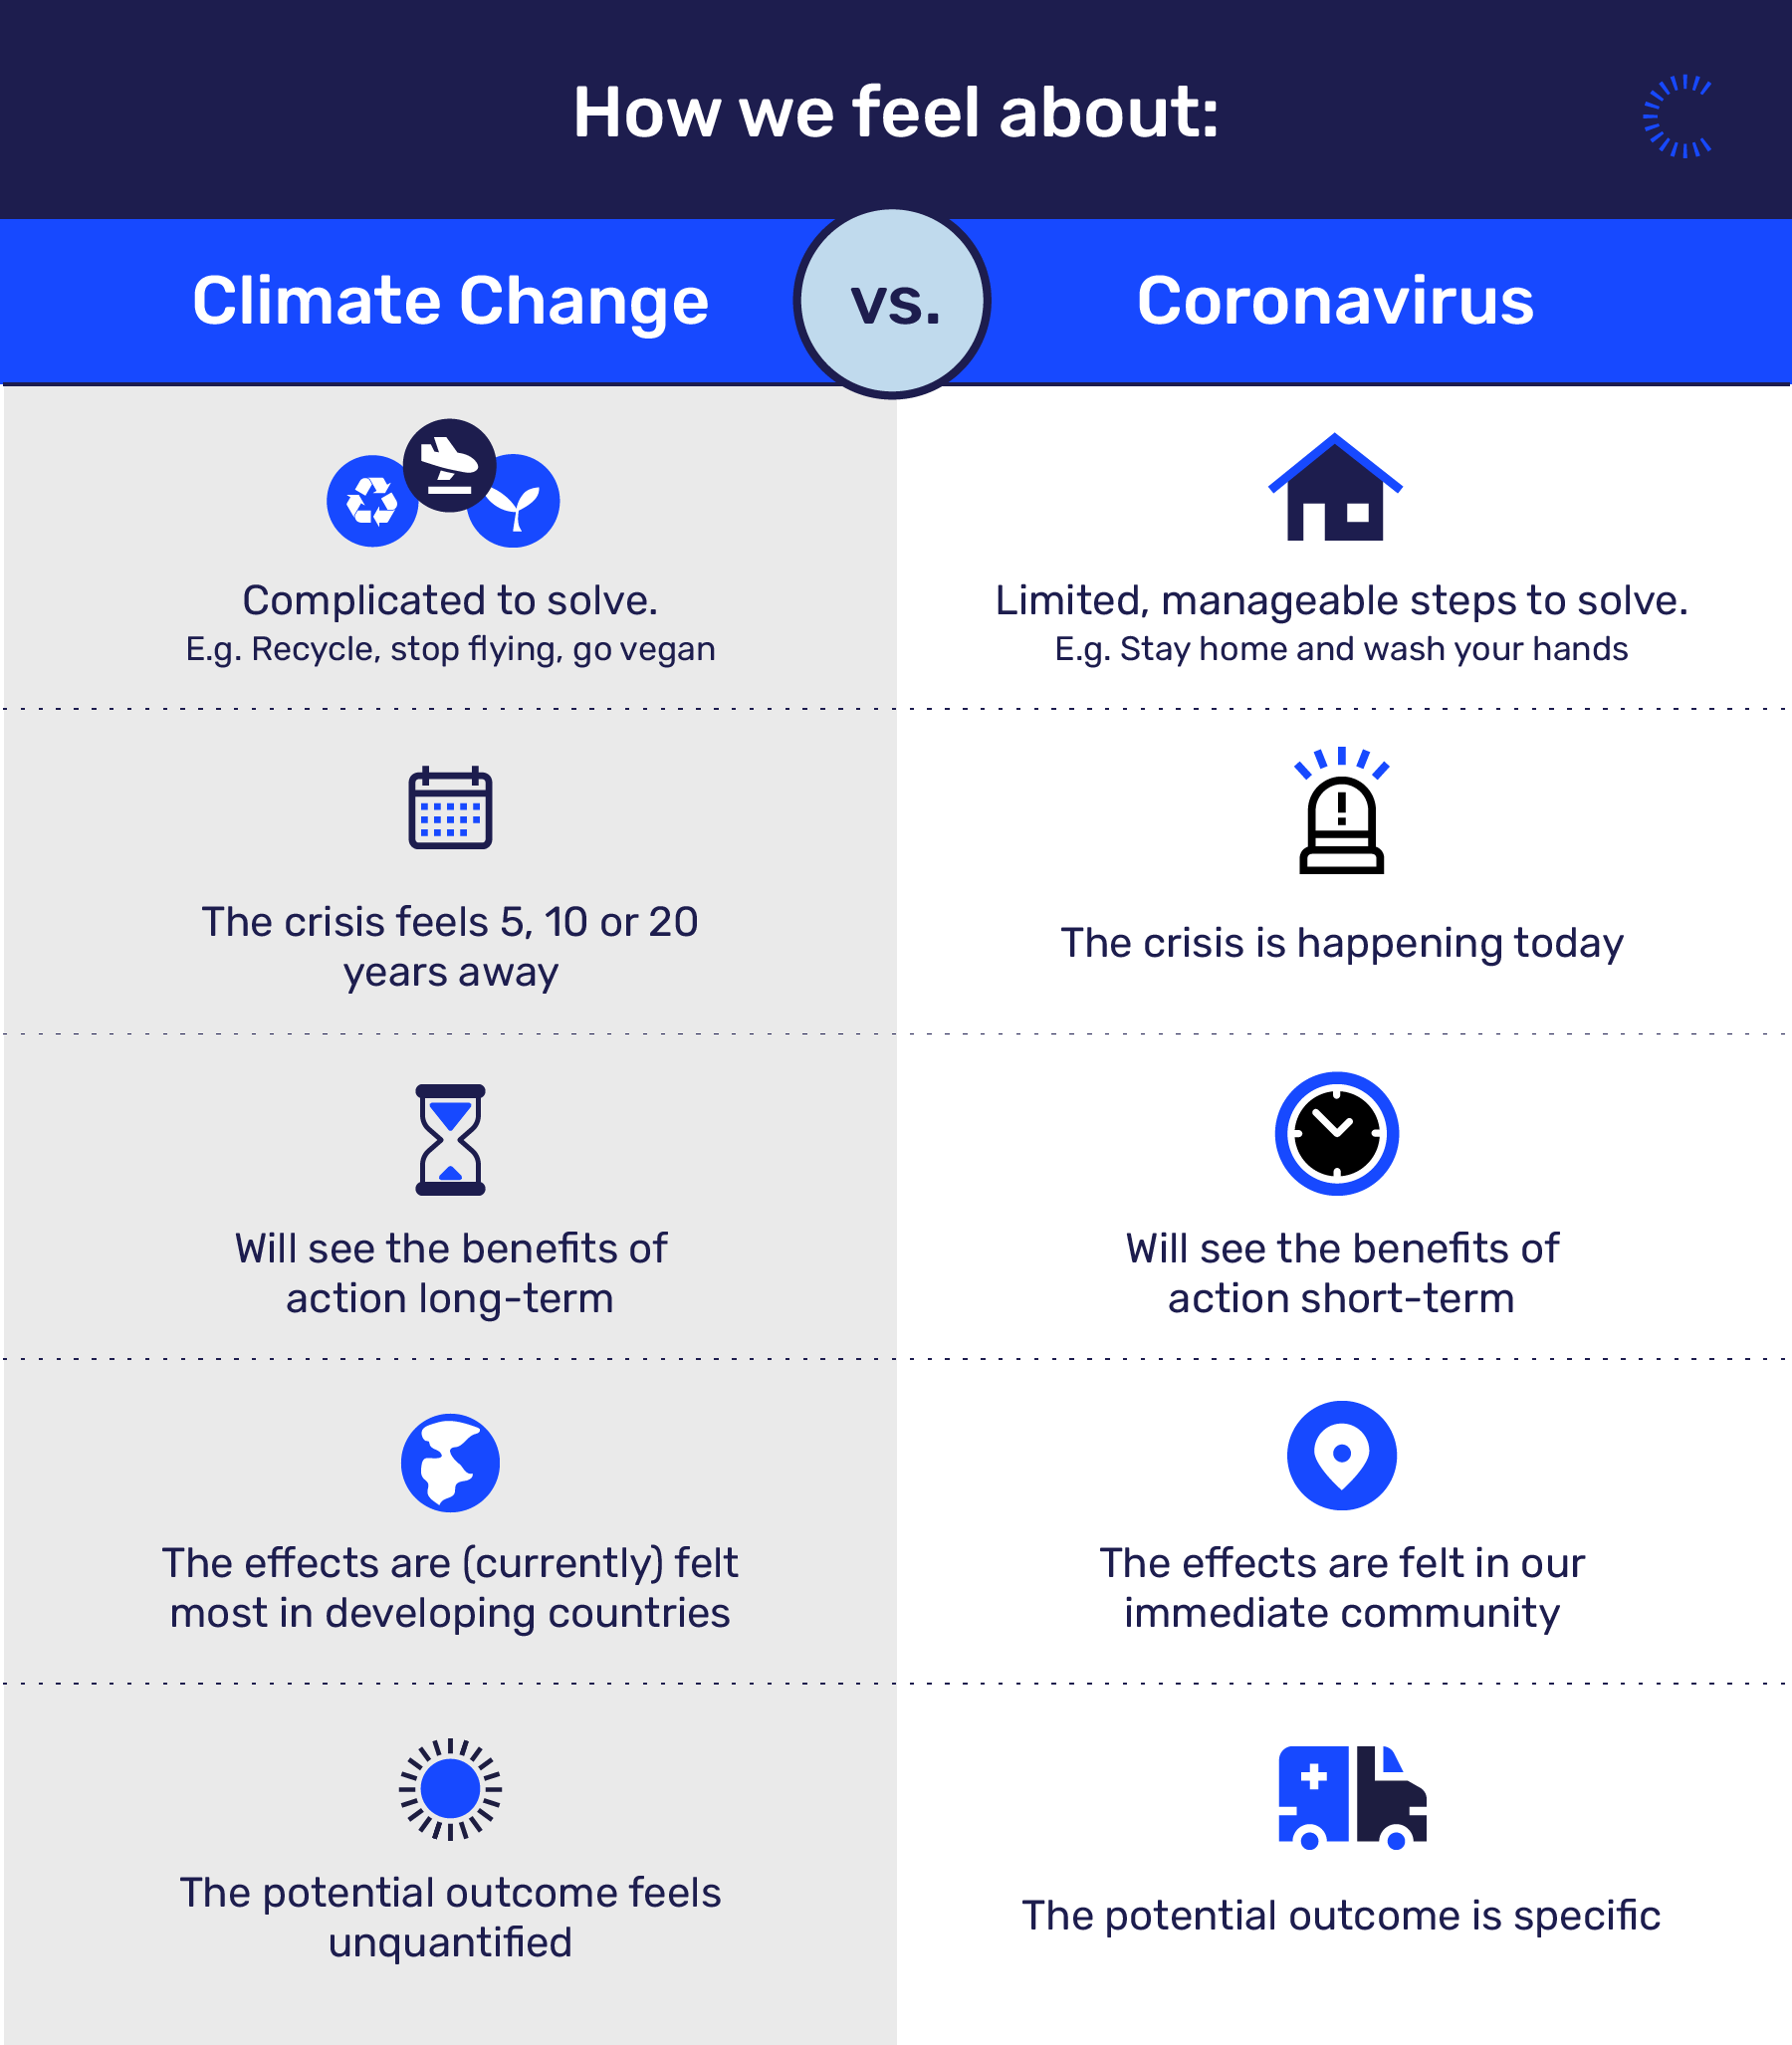 Climate change and coronavirus: Why we treat them differently